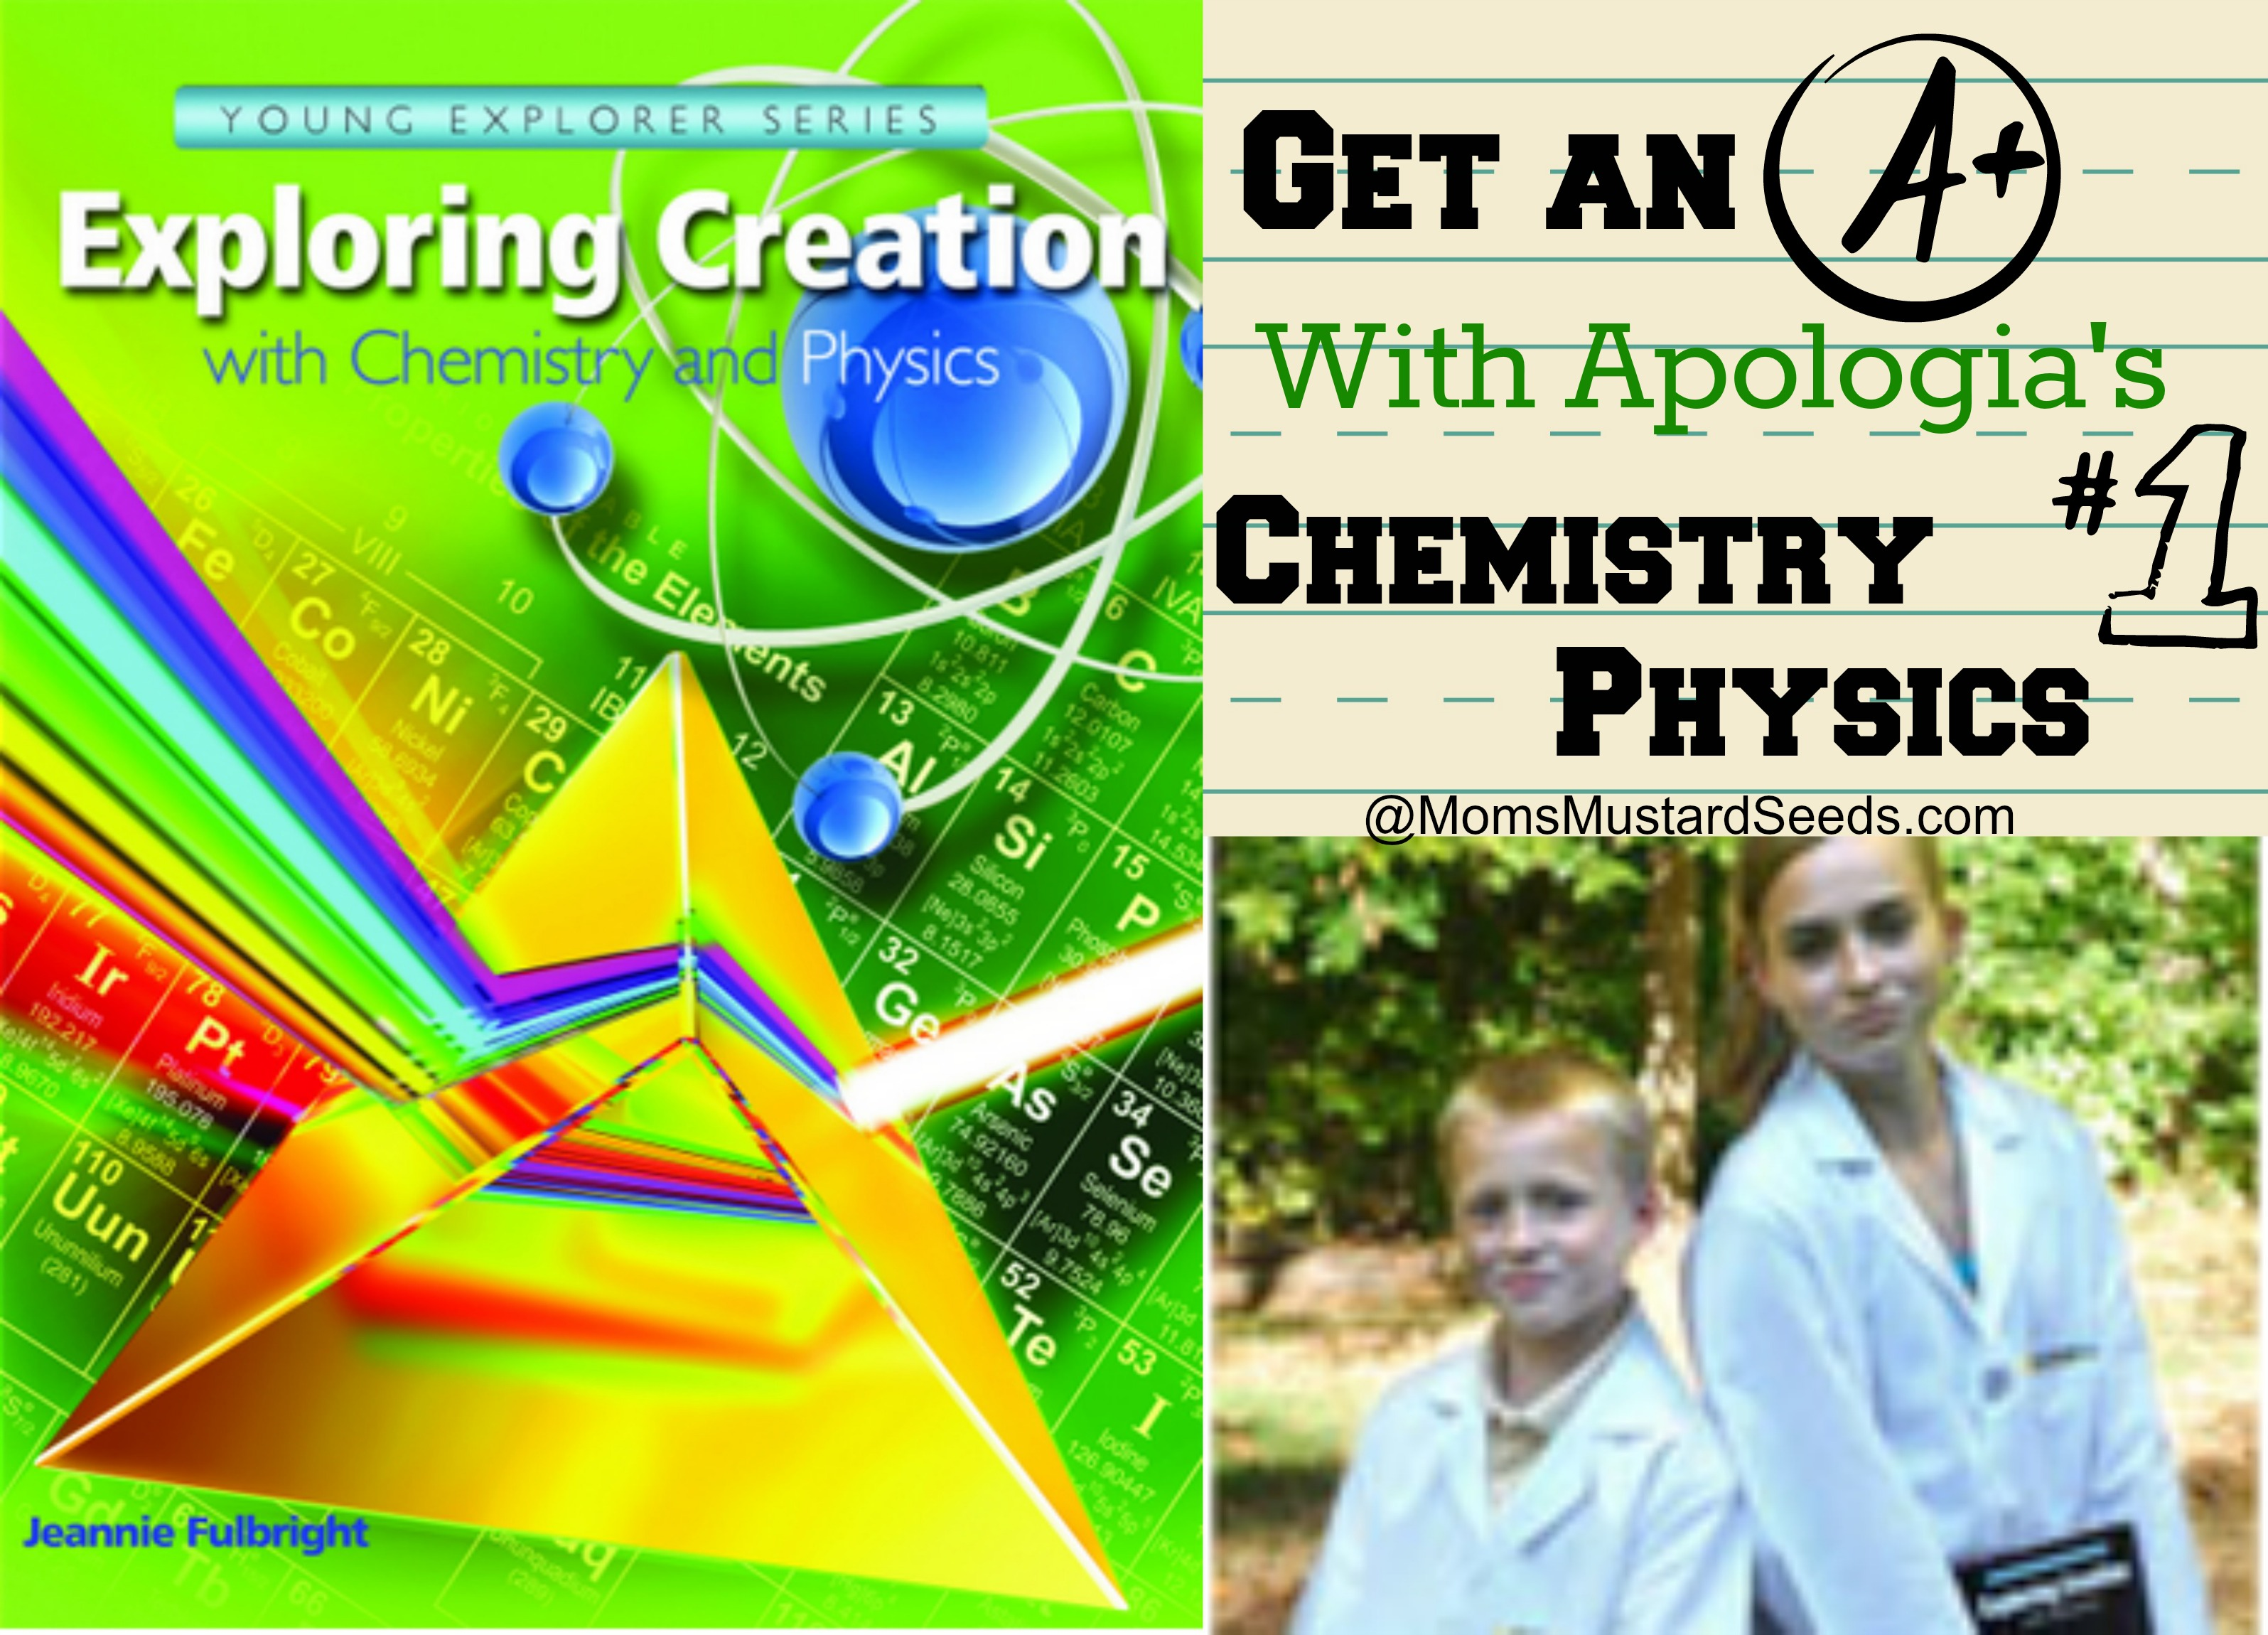 Enter to Win Apologia's New Exploring Creation with Chemistry and Physics Text Book, Notebook and Lab Coat at MomsMustardSeeds.com